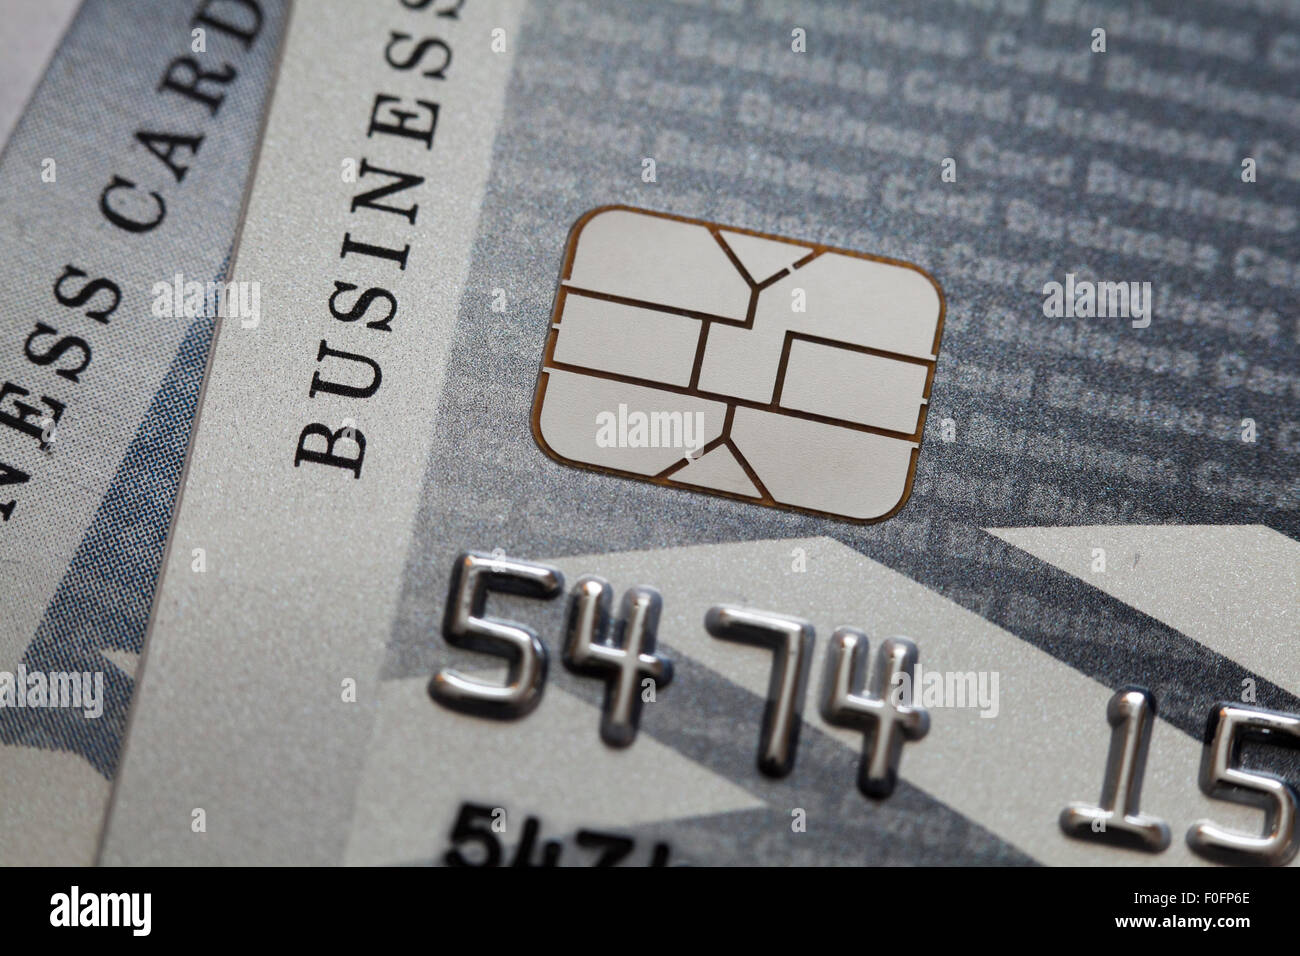 Bank america business stock photos bank america business stock bank of america business credit card security chip usa stock image colourmoves